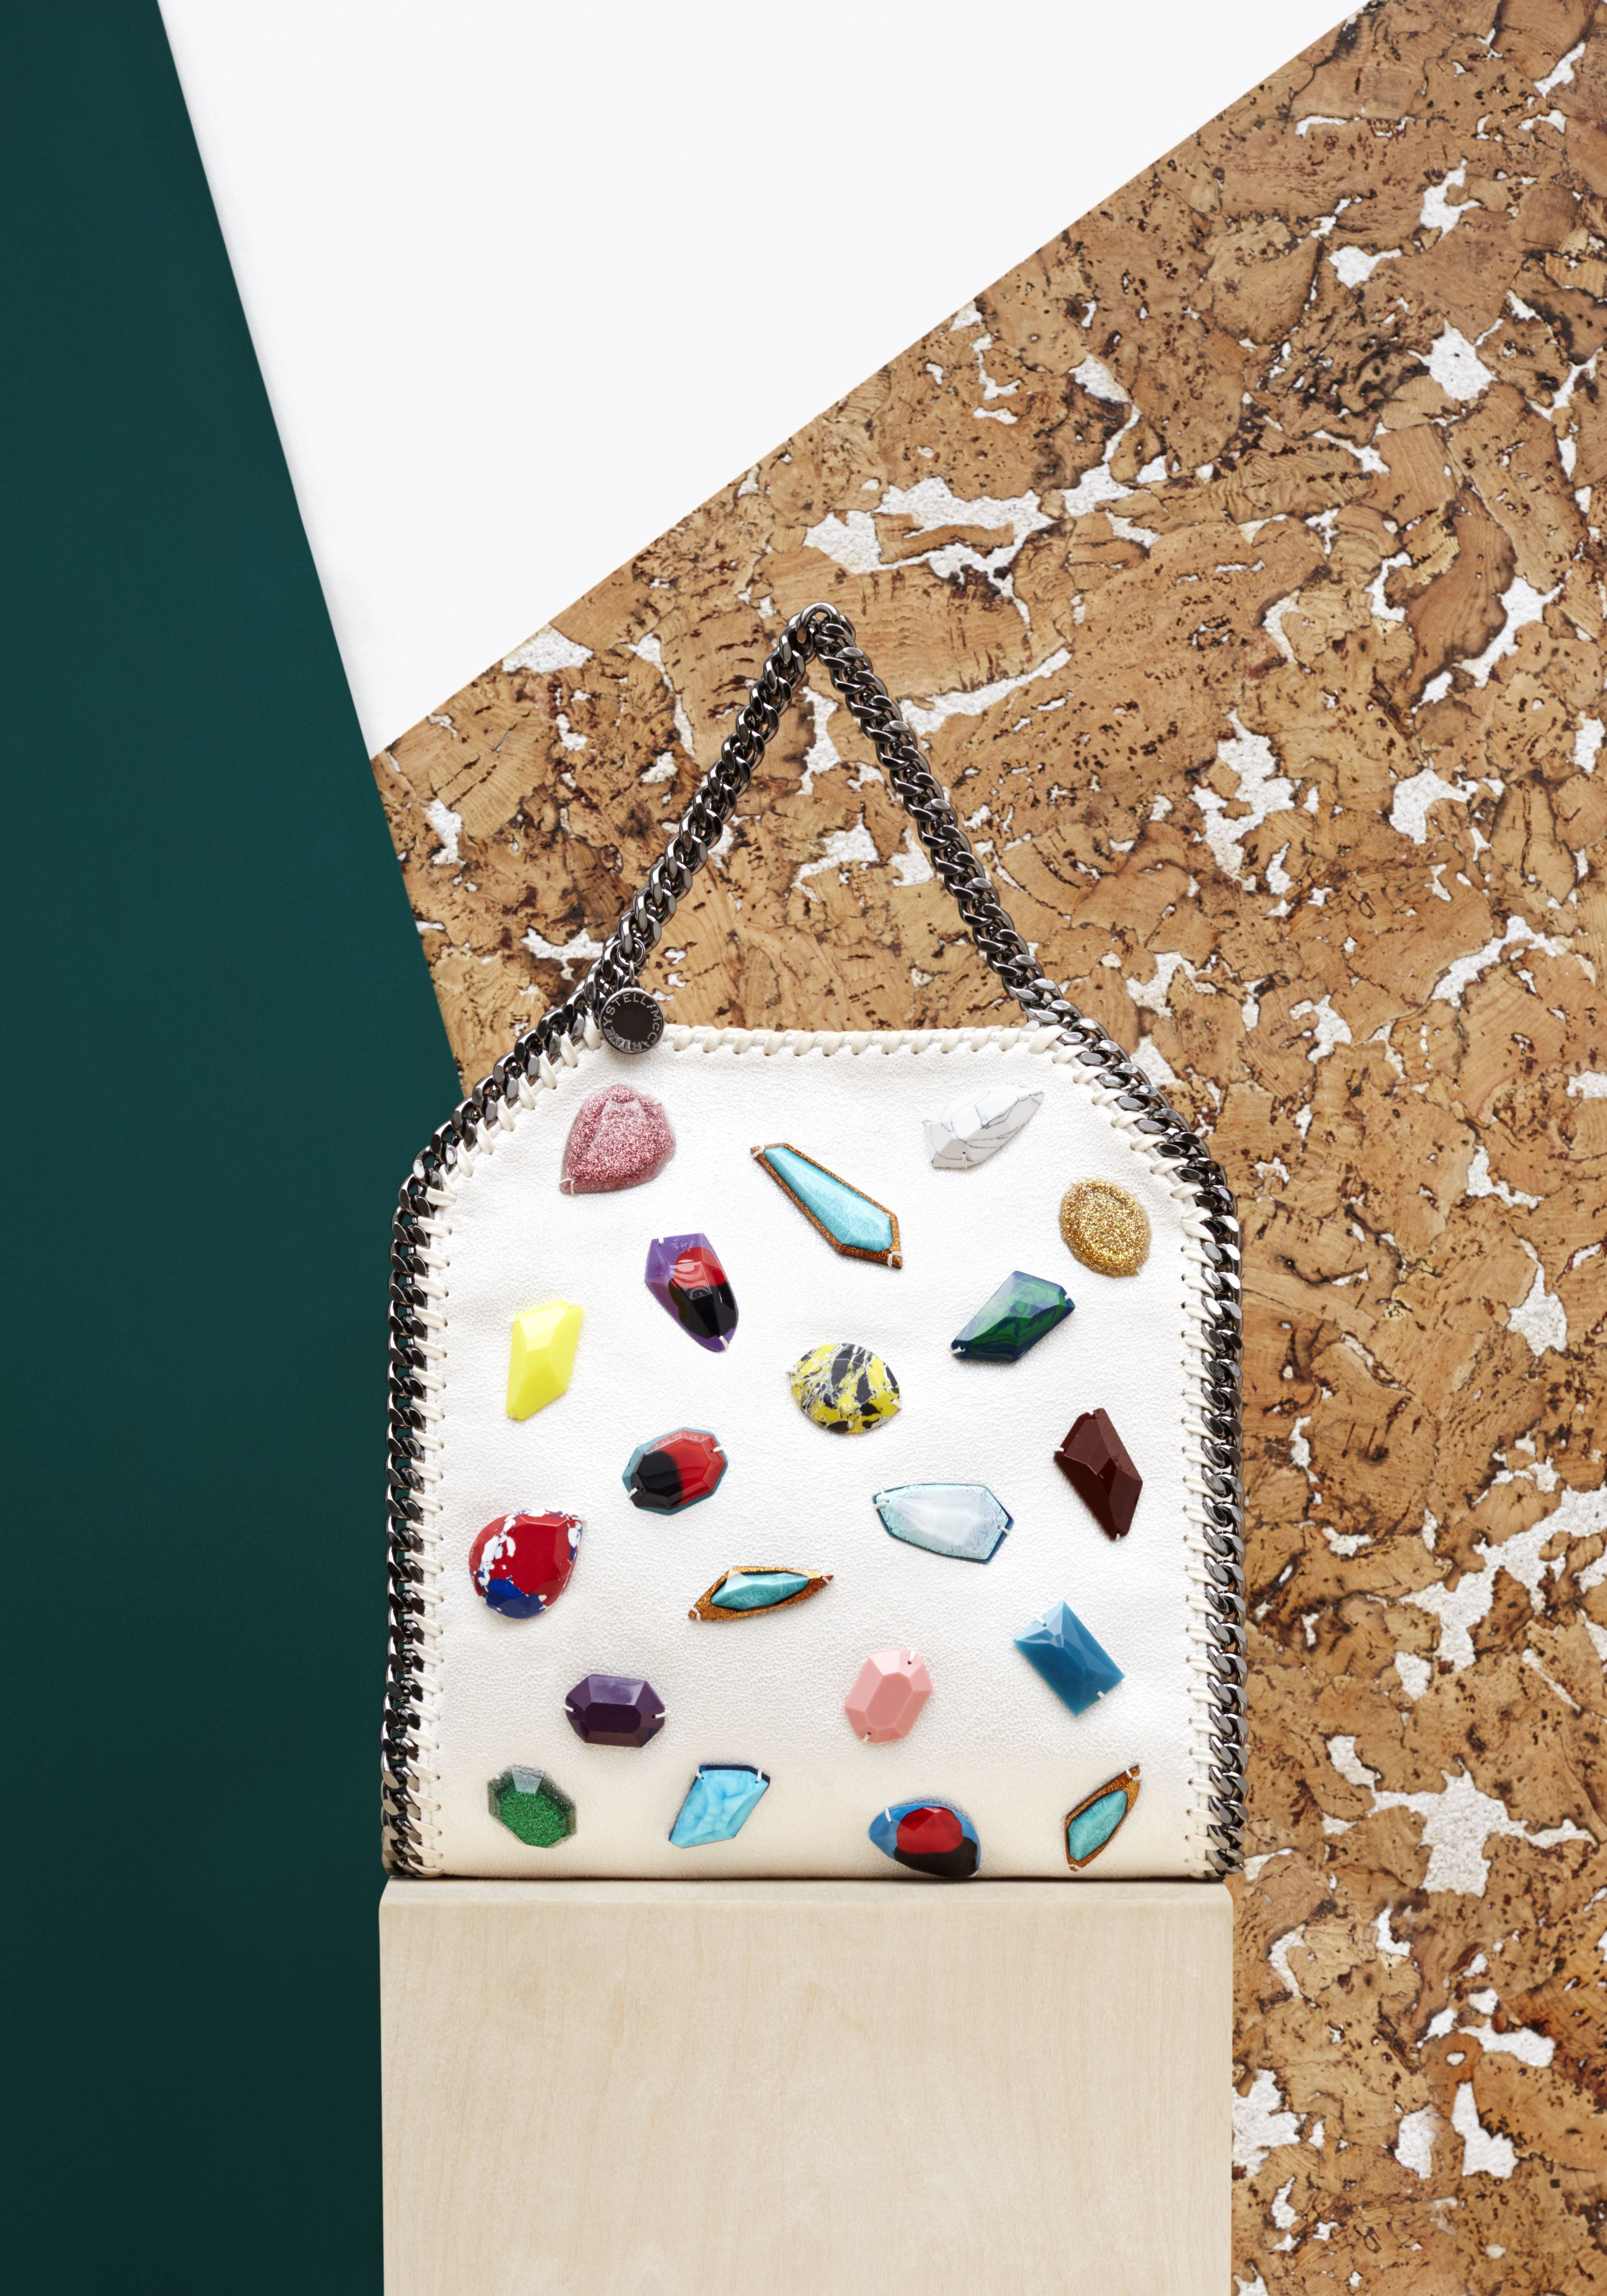 2de9f0c9533a2 Embroidered Falabella tote from the Stella McCartney Spring '15 collection  now available in a new mini size.